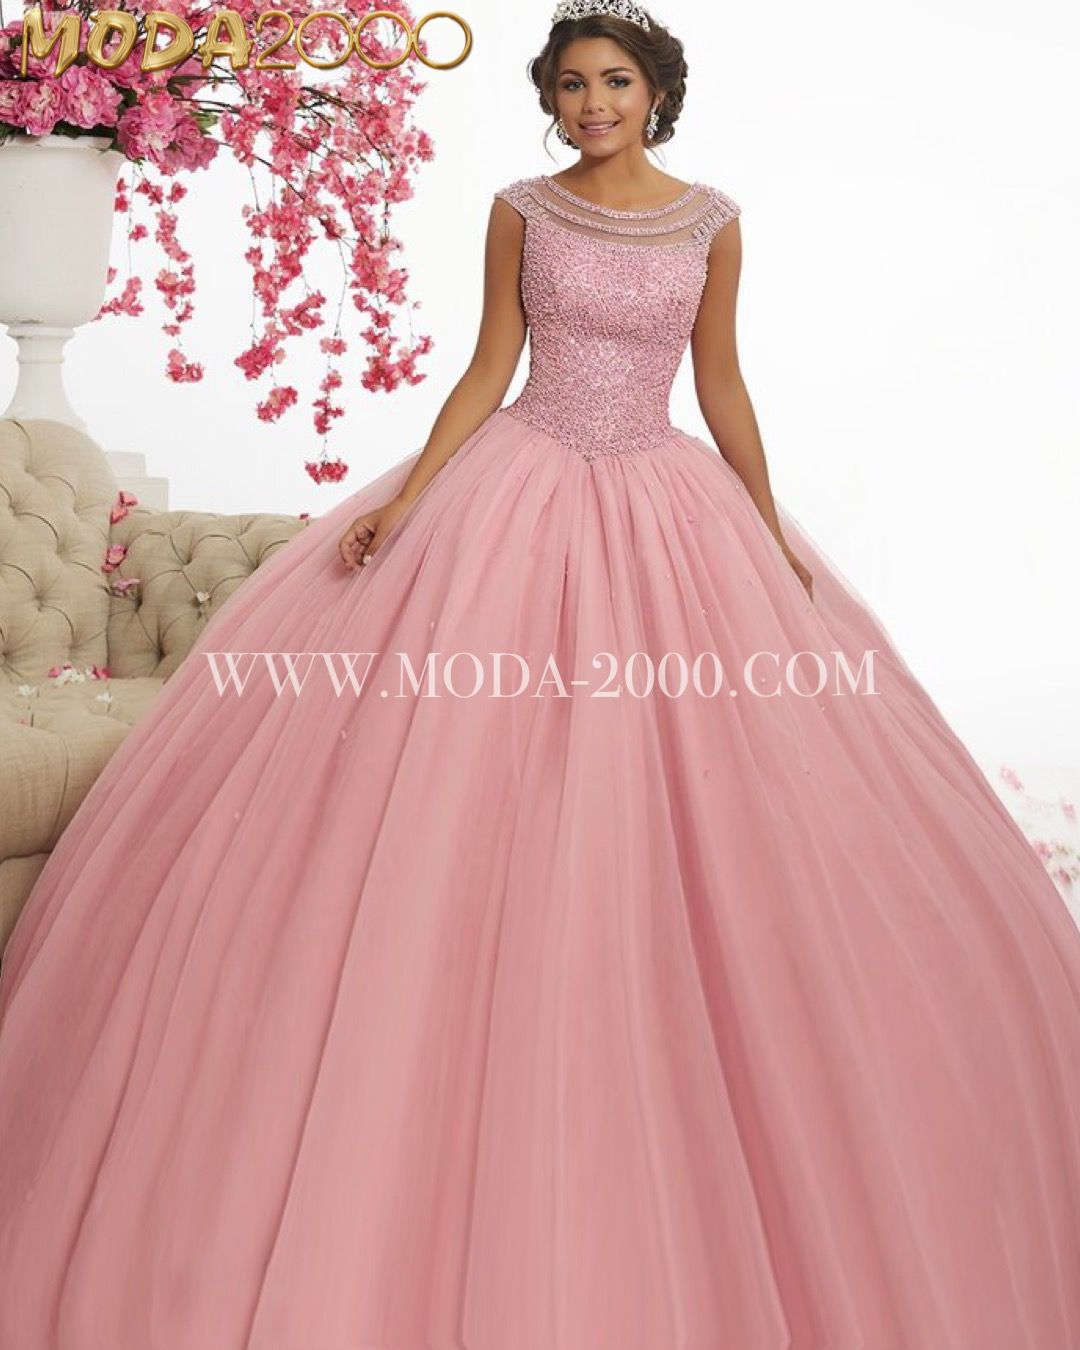 Rosey pink quinceañera sweet 16 dress! Available at Moda 2000 ...